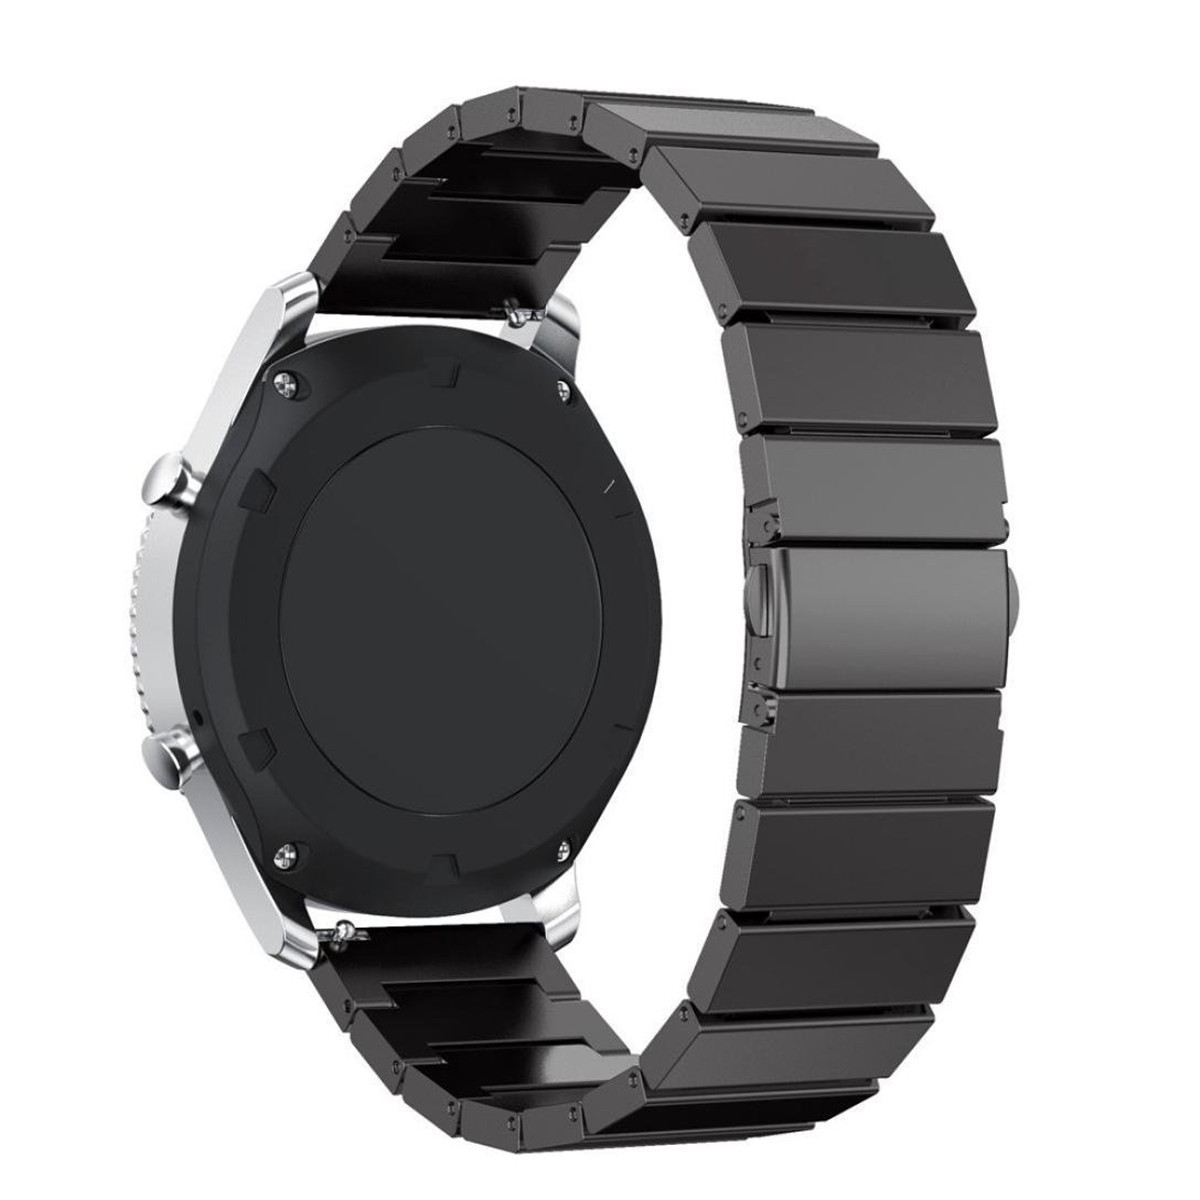 Frontier Stainless Steel Wrist Strap Watch Band Bracelet for Samsung Gear S3